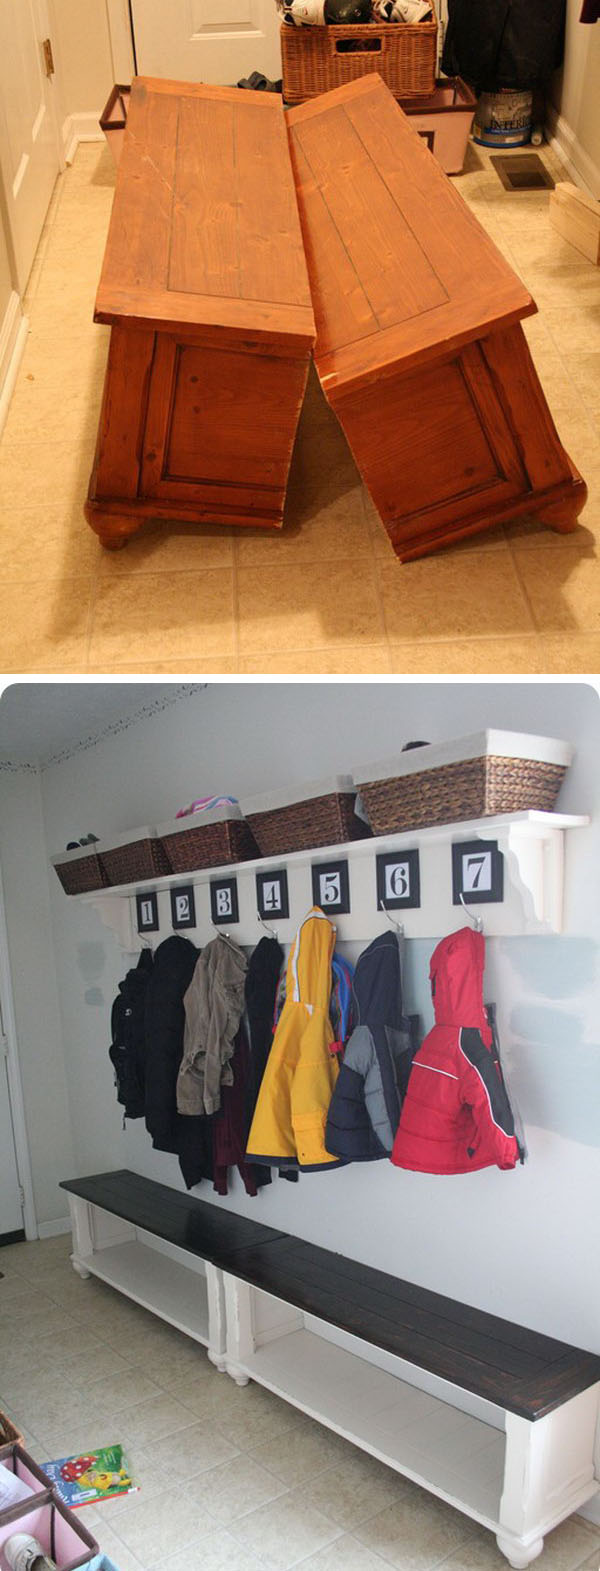 Awesome And Low Budget Ways To Re Purpose Old Furniture